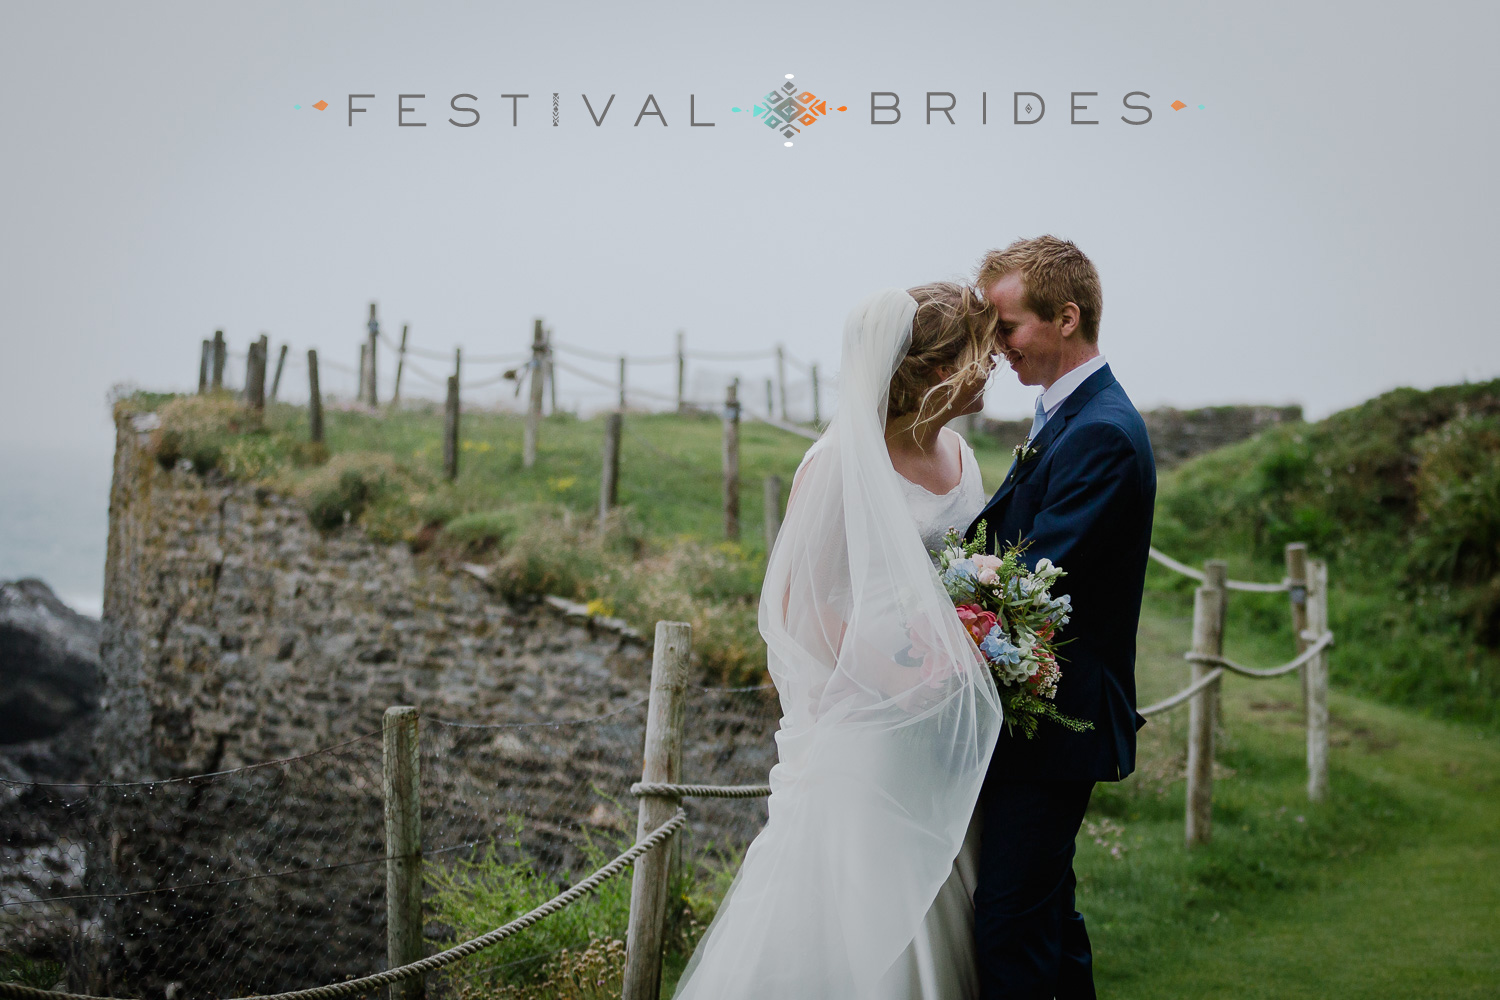 Zoe & Dave's cosy wedding at the cosy Prussia Cove in Cornwall with it's great surf vibe is featured on   festivalbrides   . This one is a cracker! Filled with DIY ideas, beautiful flower, delicious sweets and a great festival style wedding vibe...Have a look and get inspired!